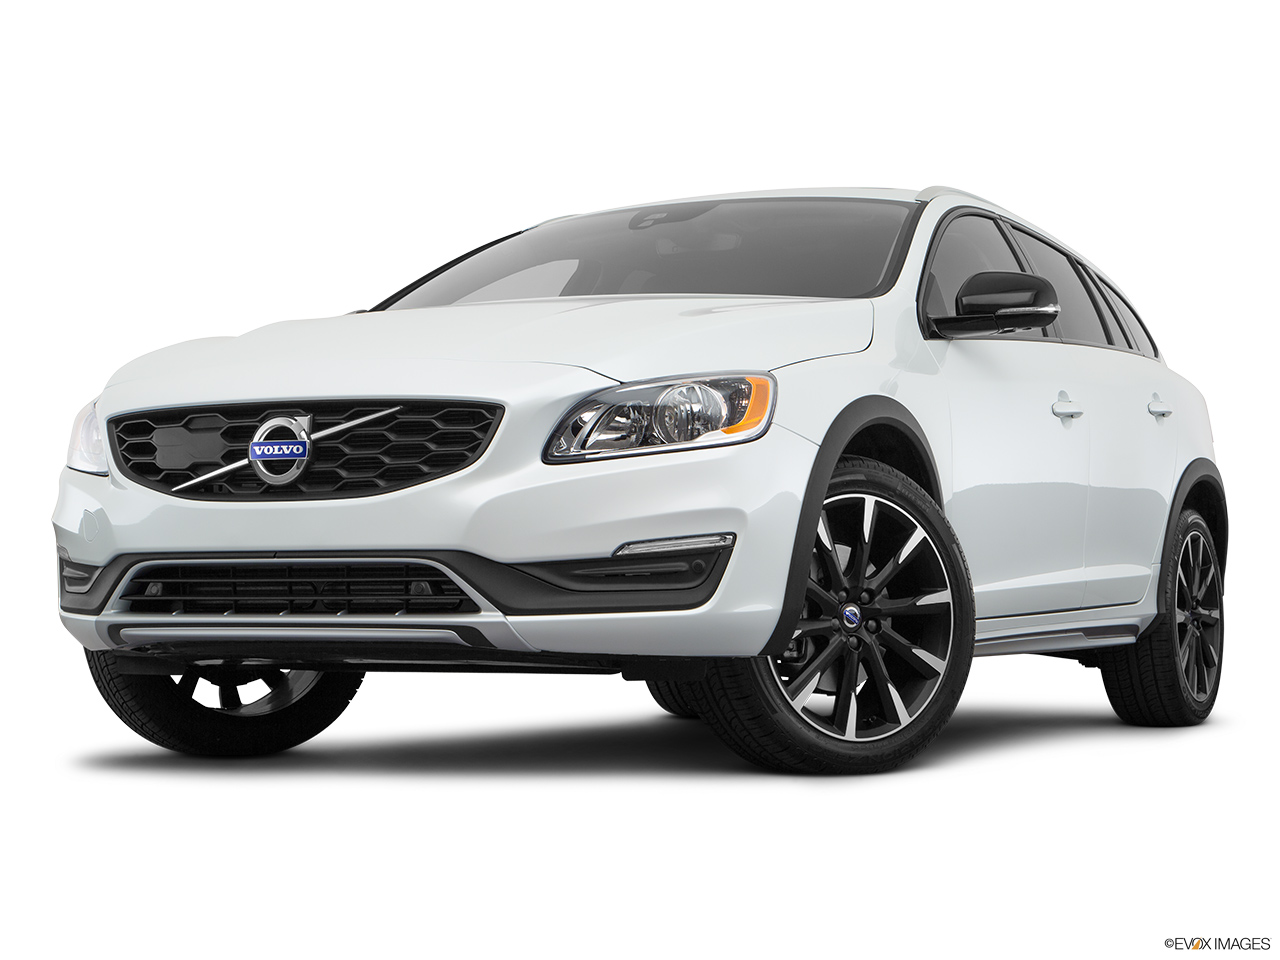 2018 Volvo V60 Cross Country T5 AWD Front angle view, low wide perspective.